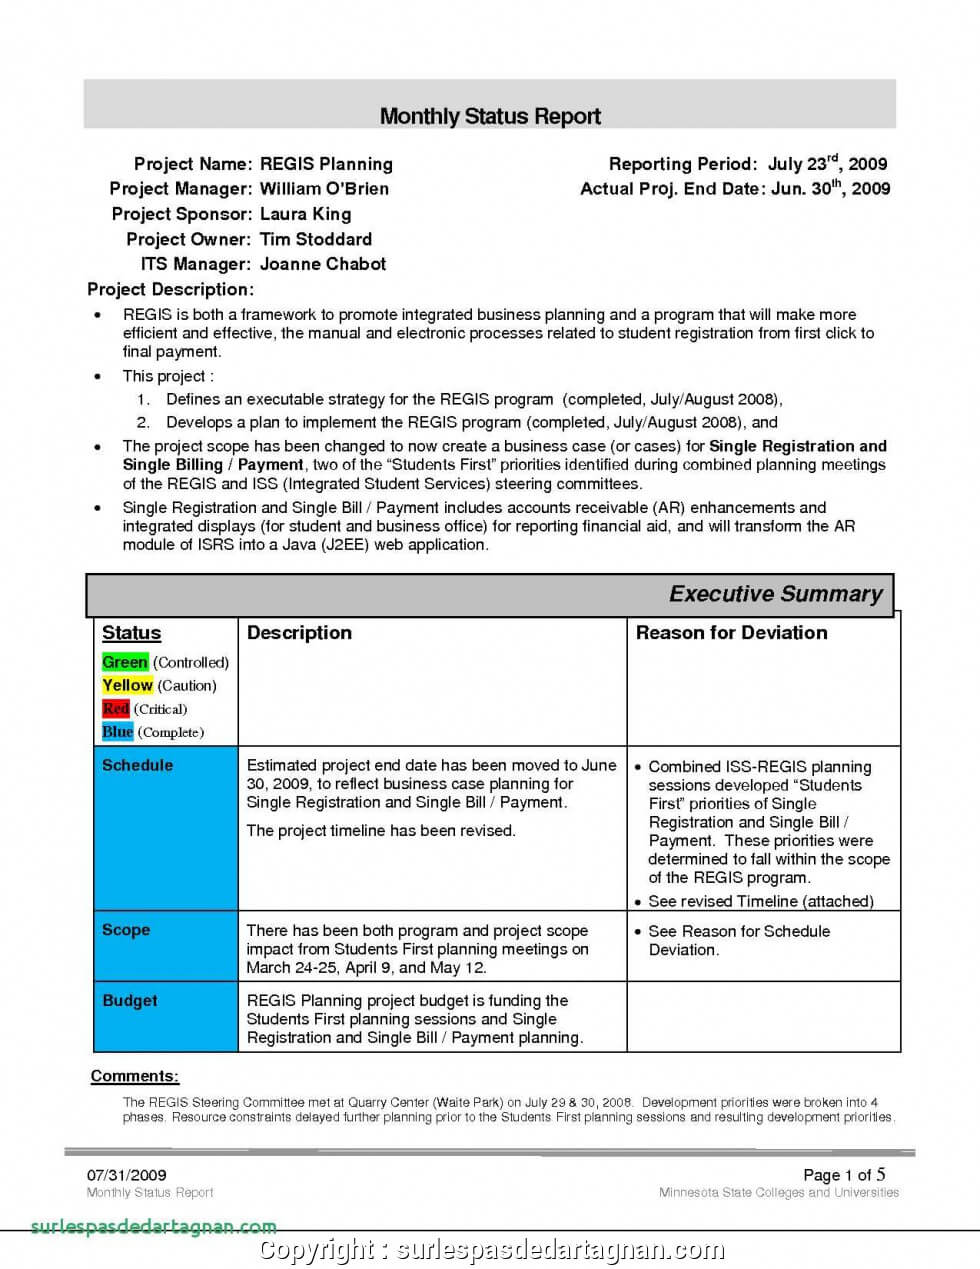 Sales Manager Monthly Report Templates - Atlantaauctionco Within Sales Manager Monthly Report Templates